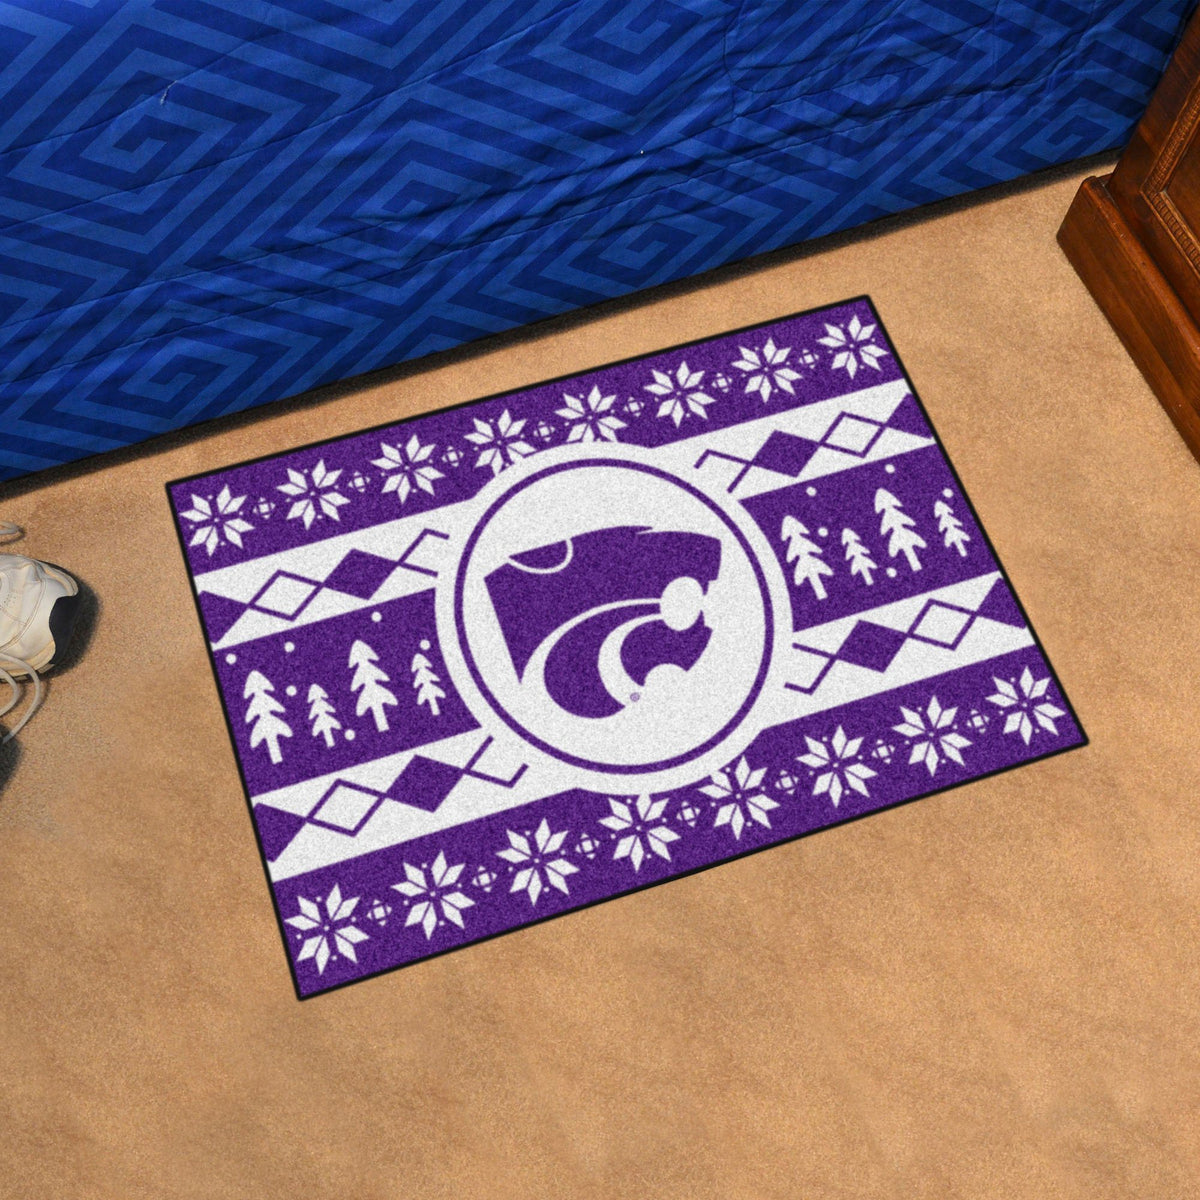 Collegiate - Holiday Sweater Starter Mat Collegiate Mats, Rectangular Mats, Holiday Sweater Starter Mat, Collegiate, Home Fan Mats Kansas State